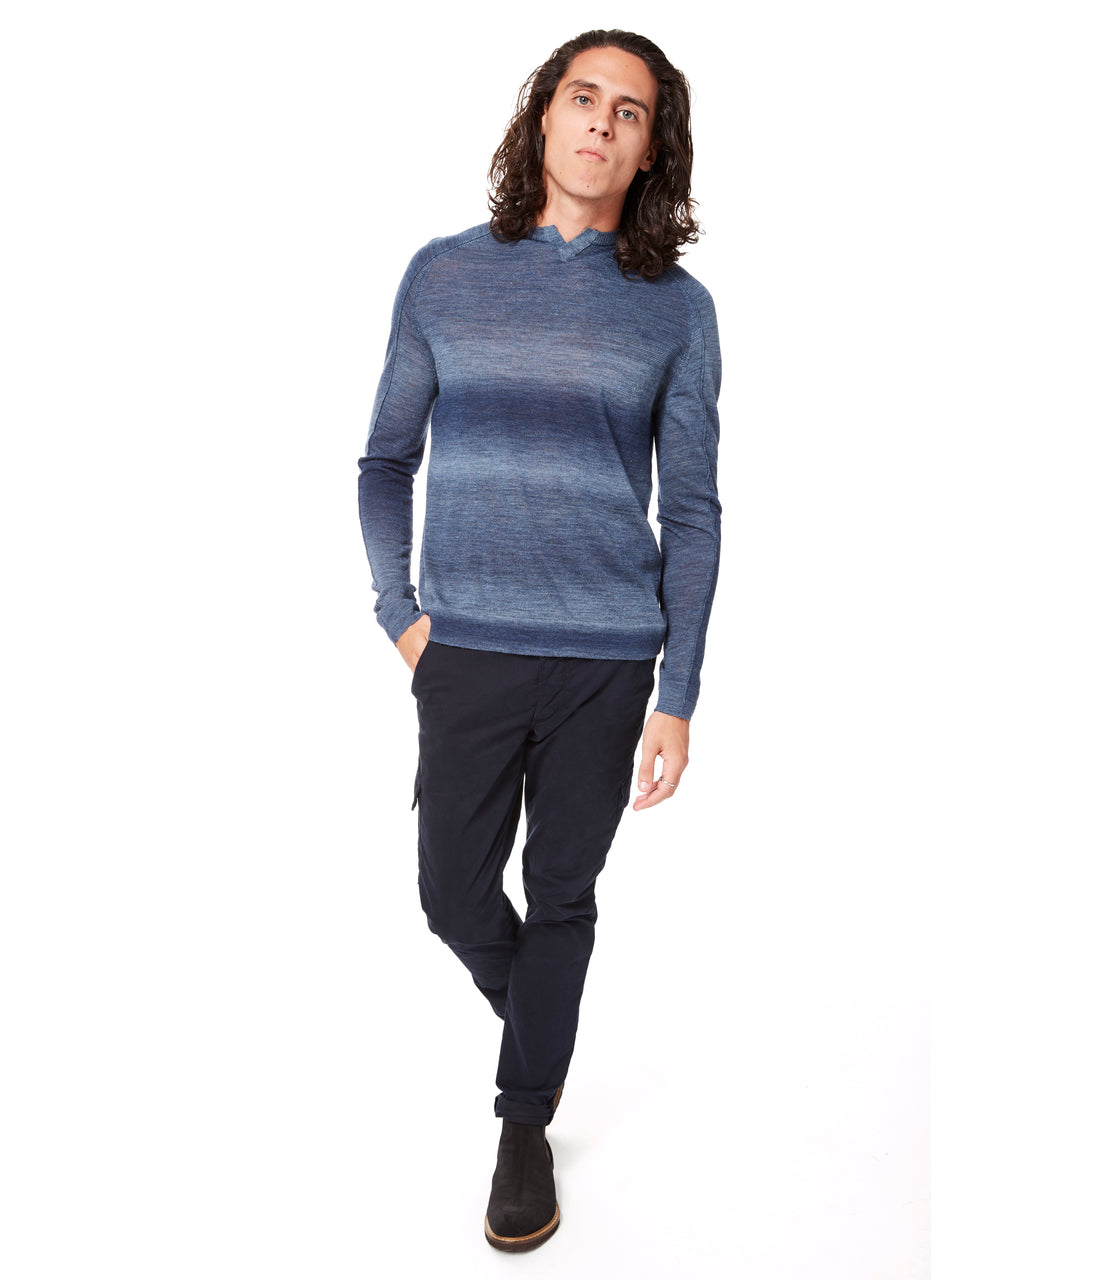 MVP V-Notch Spacedye Sweater - Indigo - Good Man Brand - MVP V-Notch Spacedye Sweater - Indigo